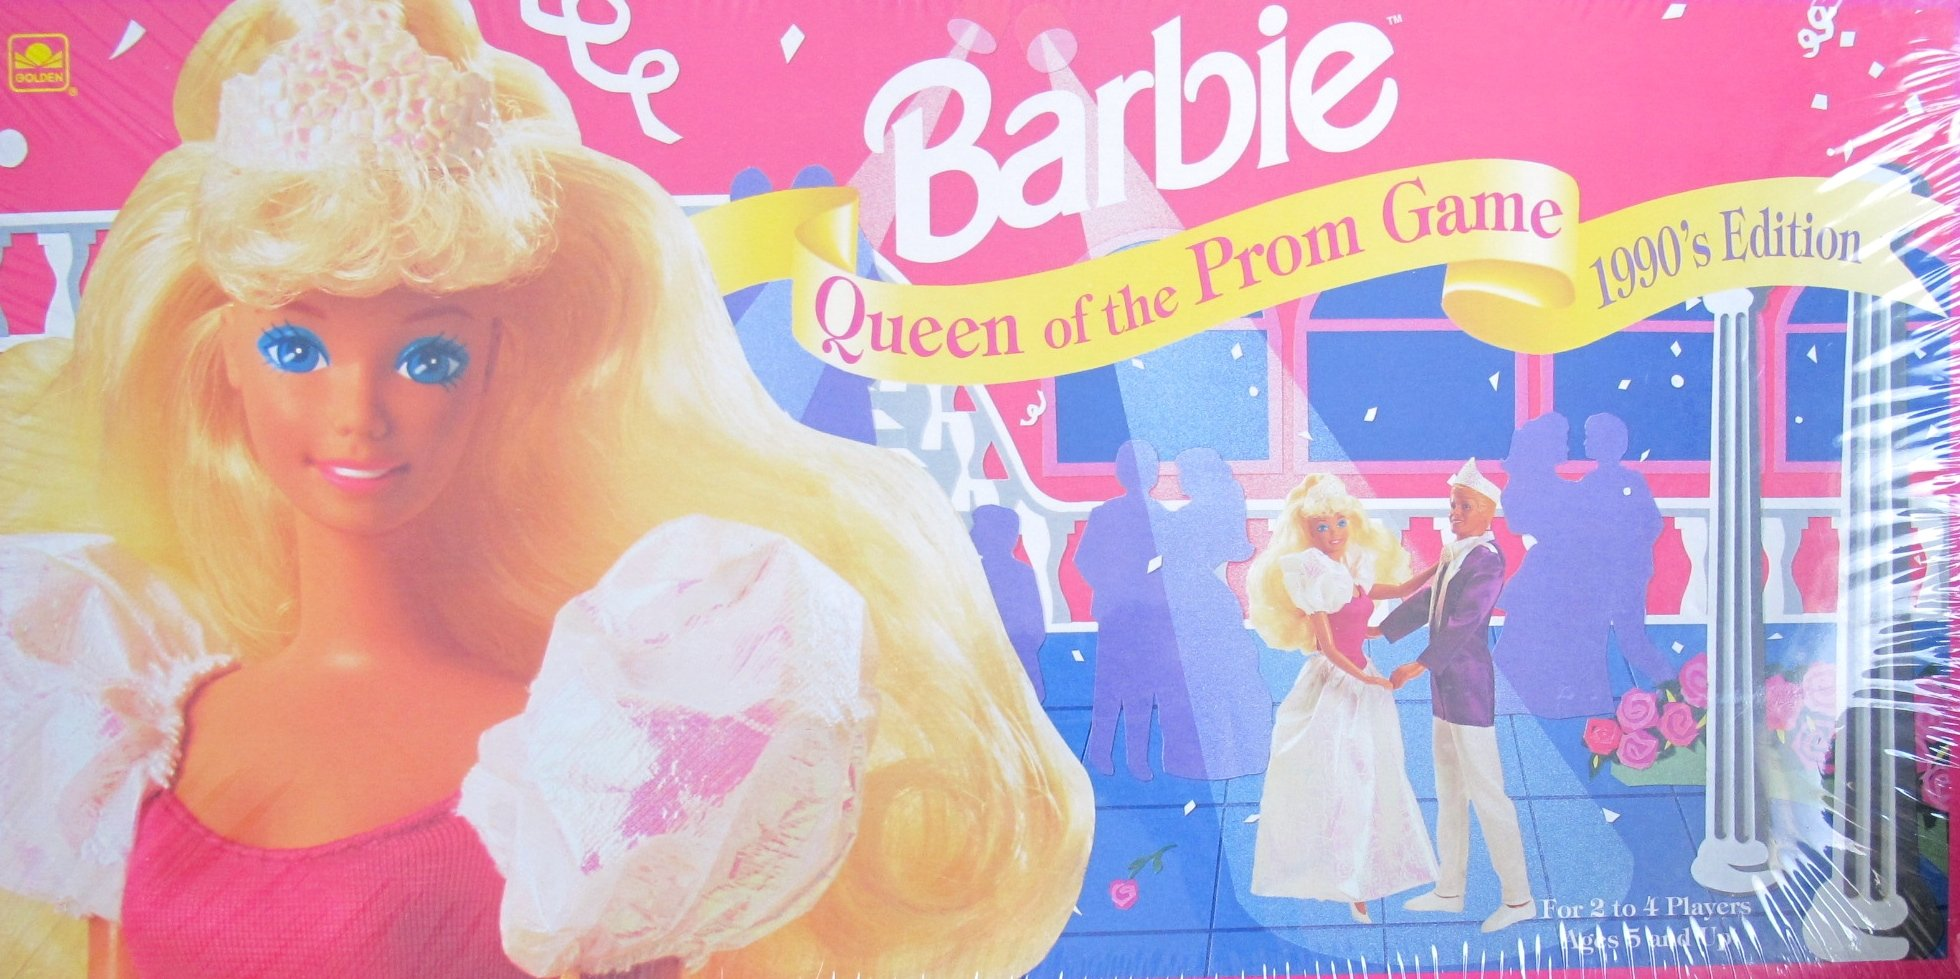 BARBIE 1990's Edition QUEEN of THE PROM GAME (1991 Made in USA)